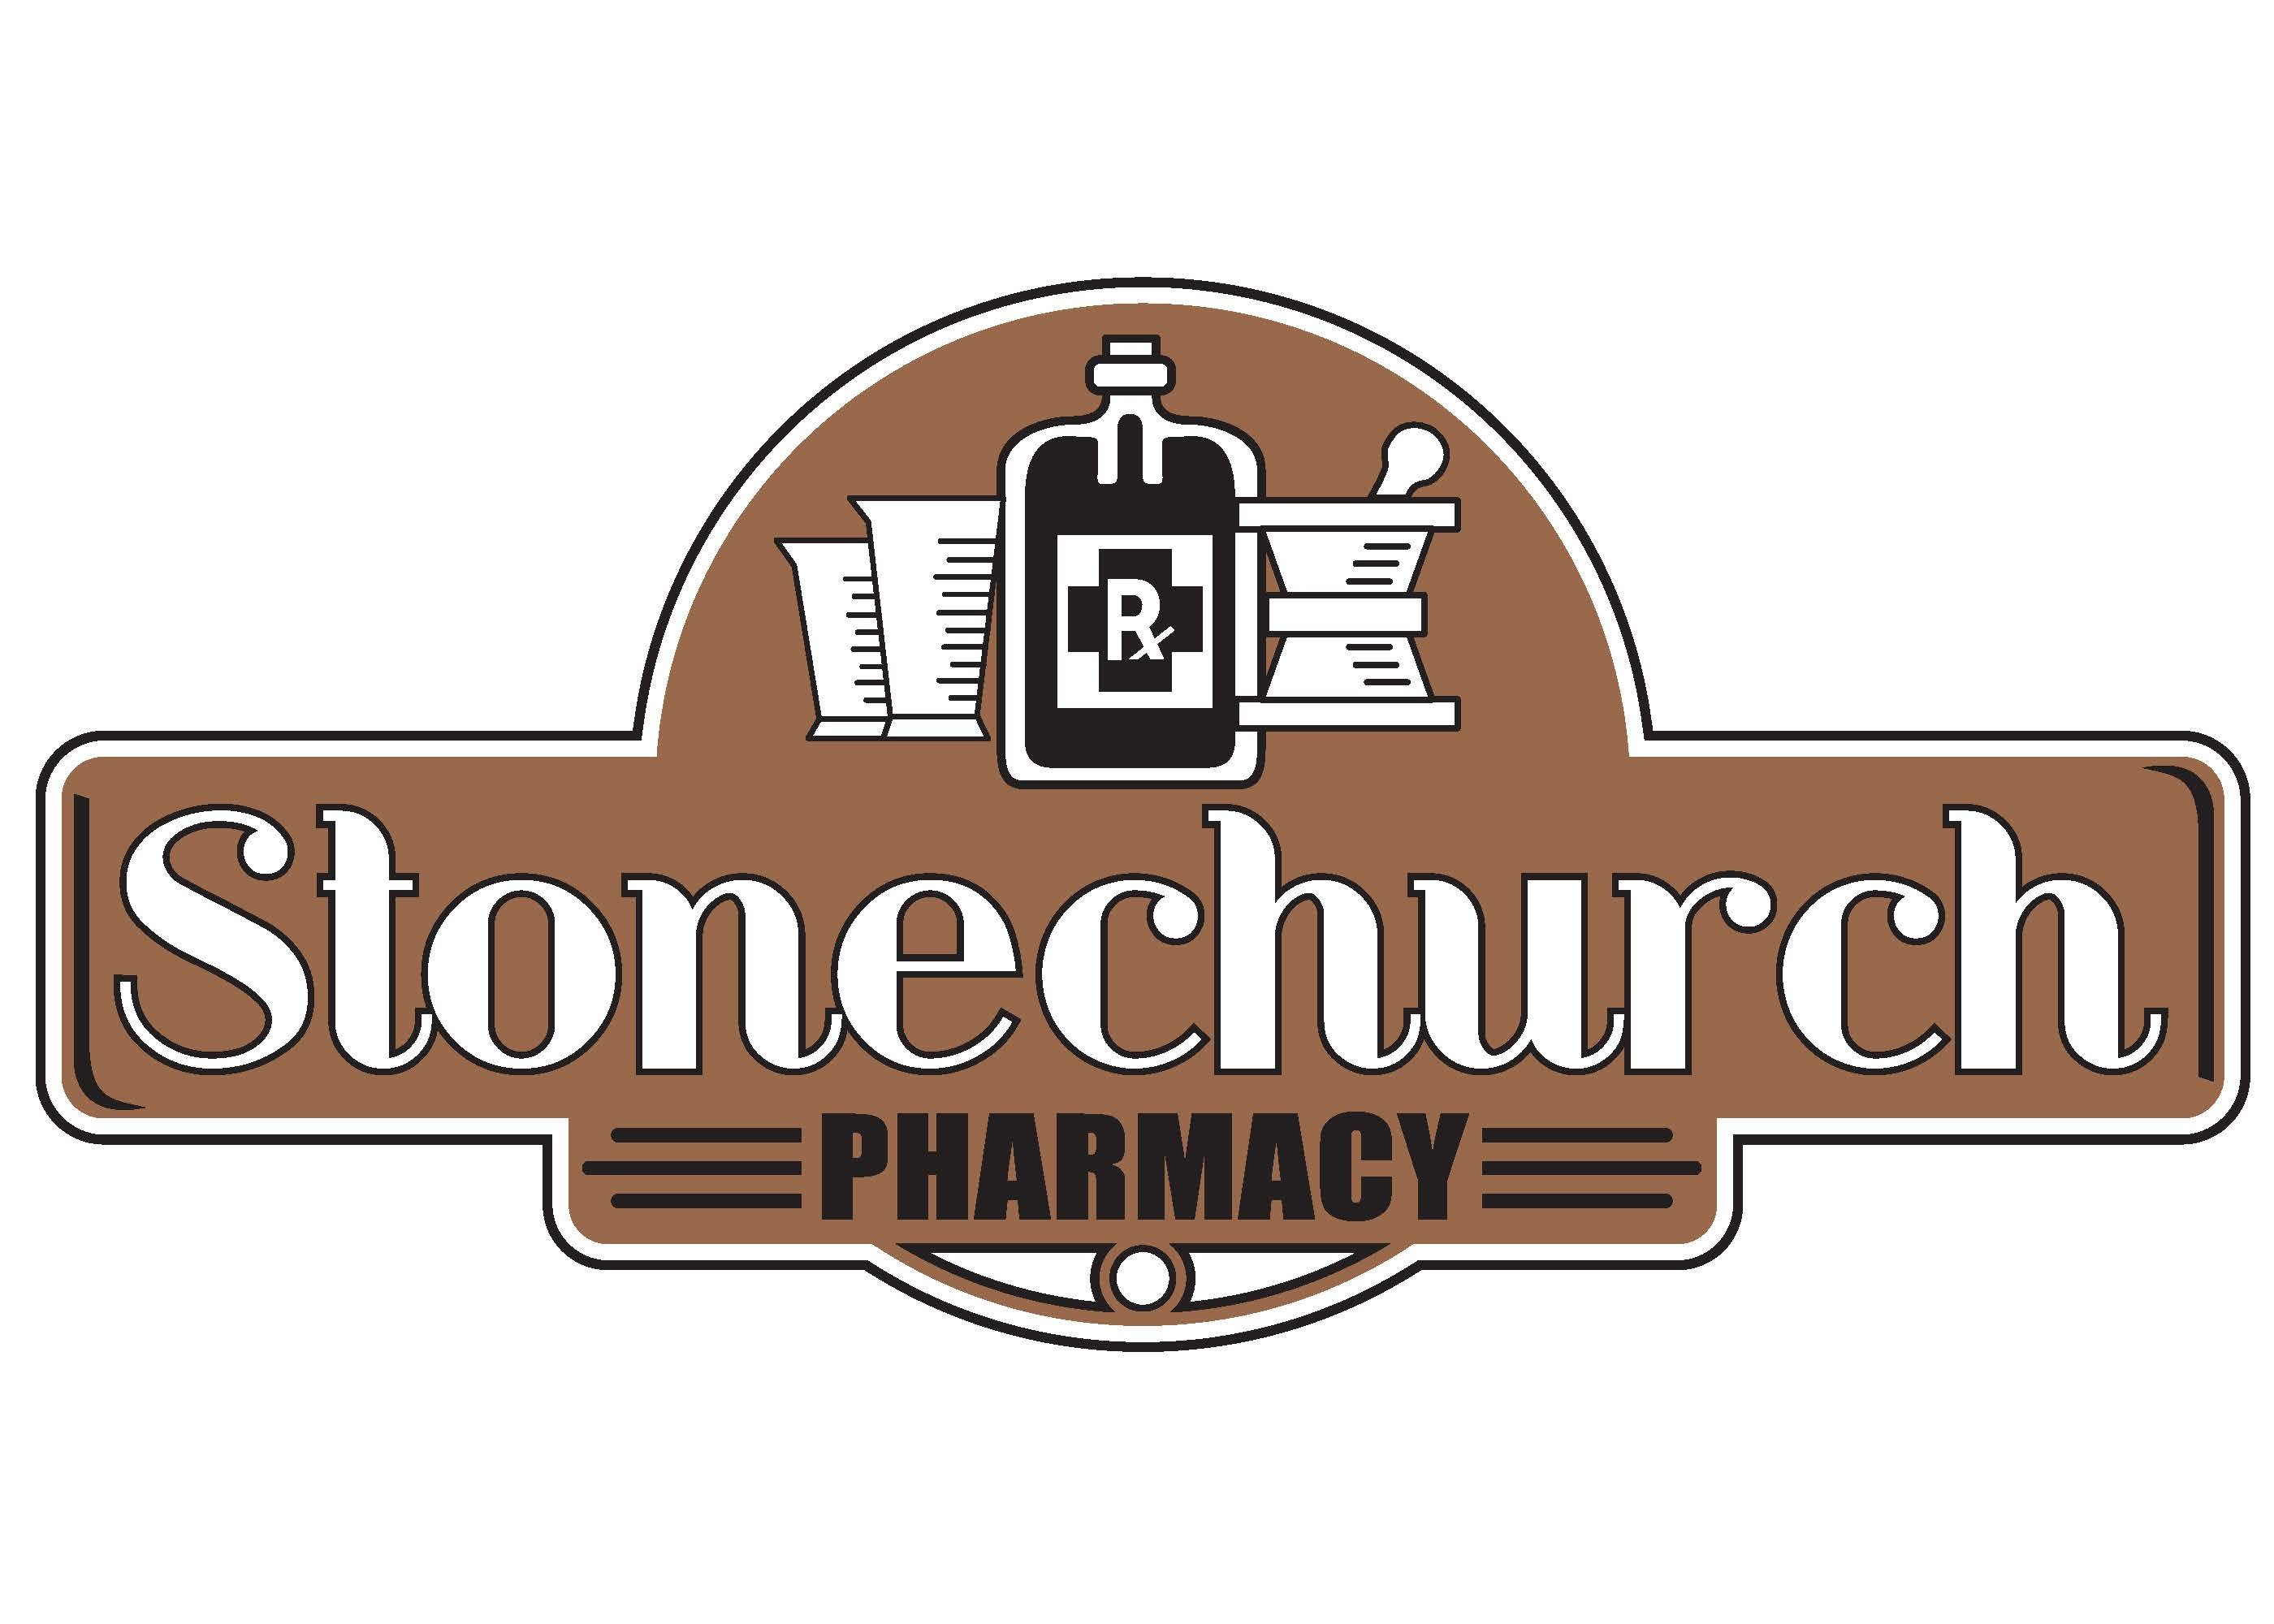 Stonechurch Pharmacy